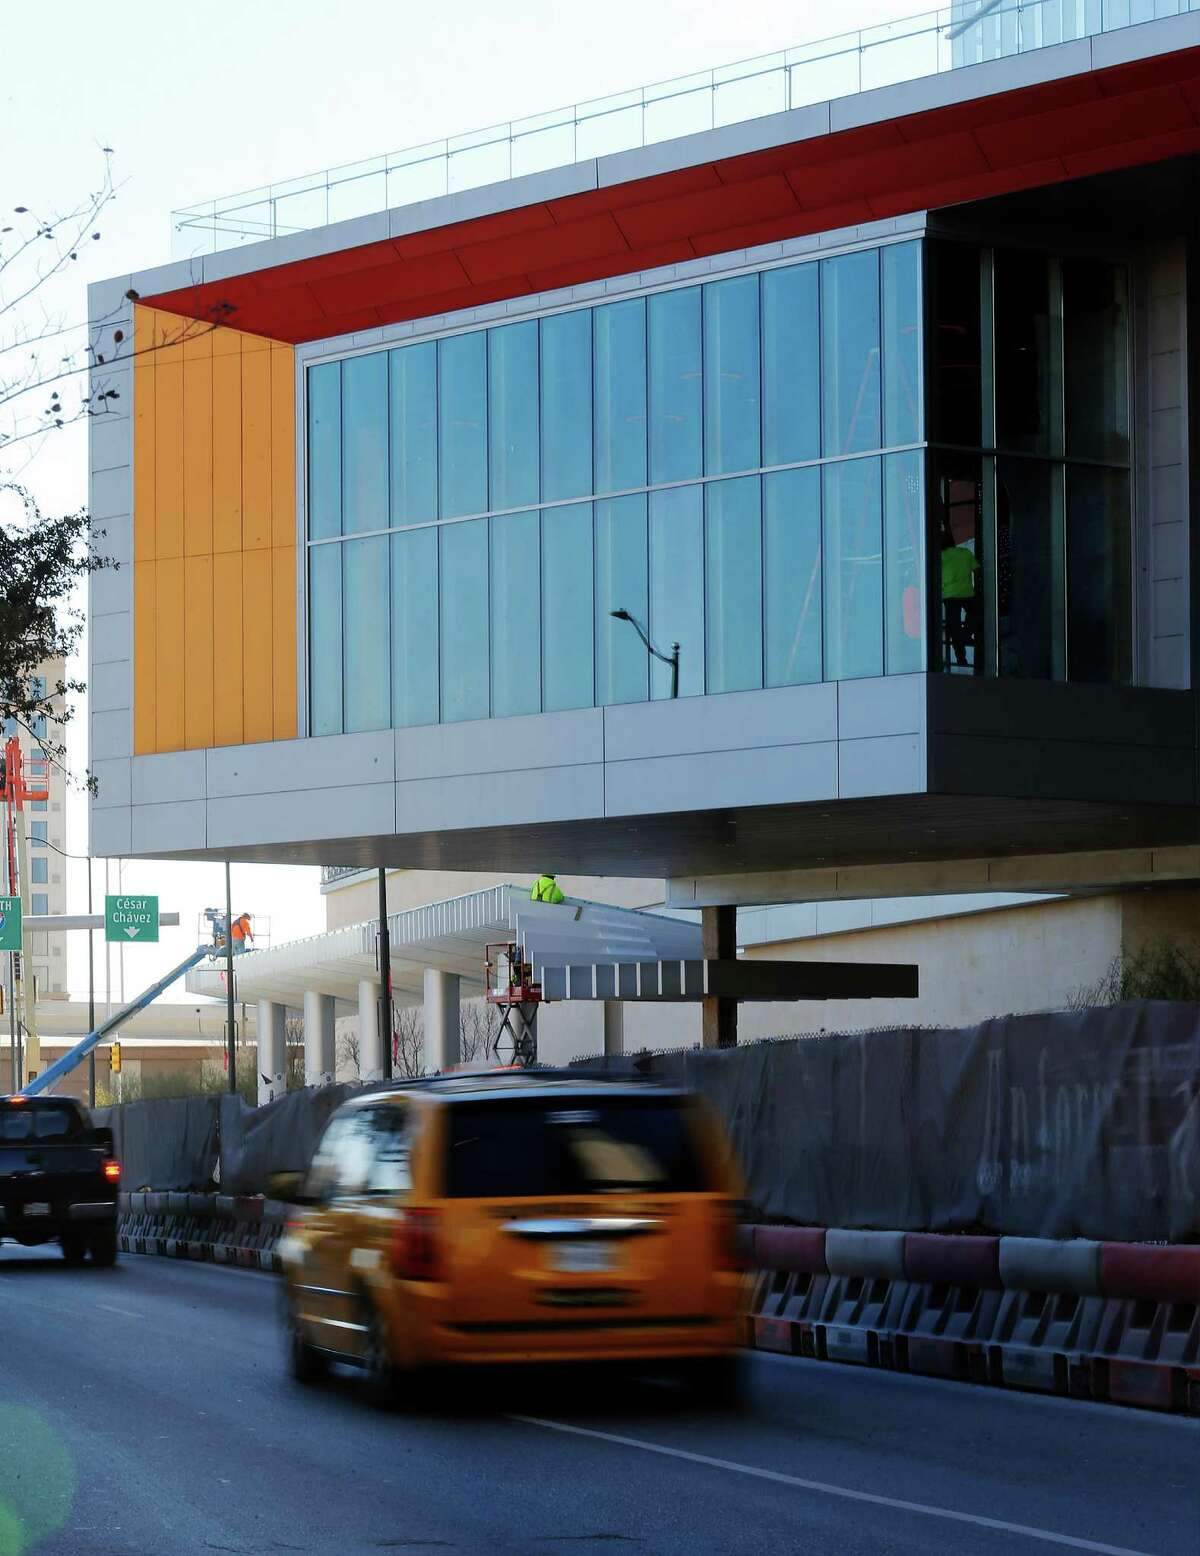 Traffic passes below the Cantilever Room. The Convention Center expansion will finally conclude construction and have convention business in the coming weeks. The project was the largest capital project in the city's history and features an innovative